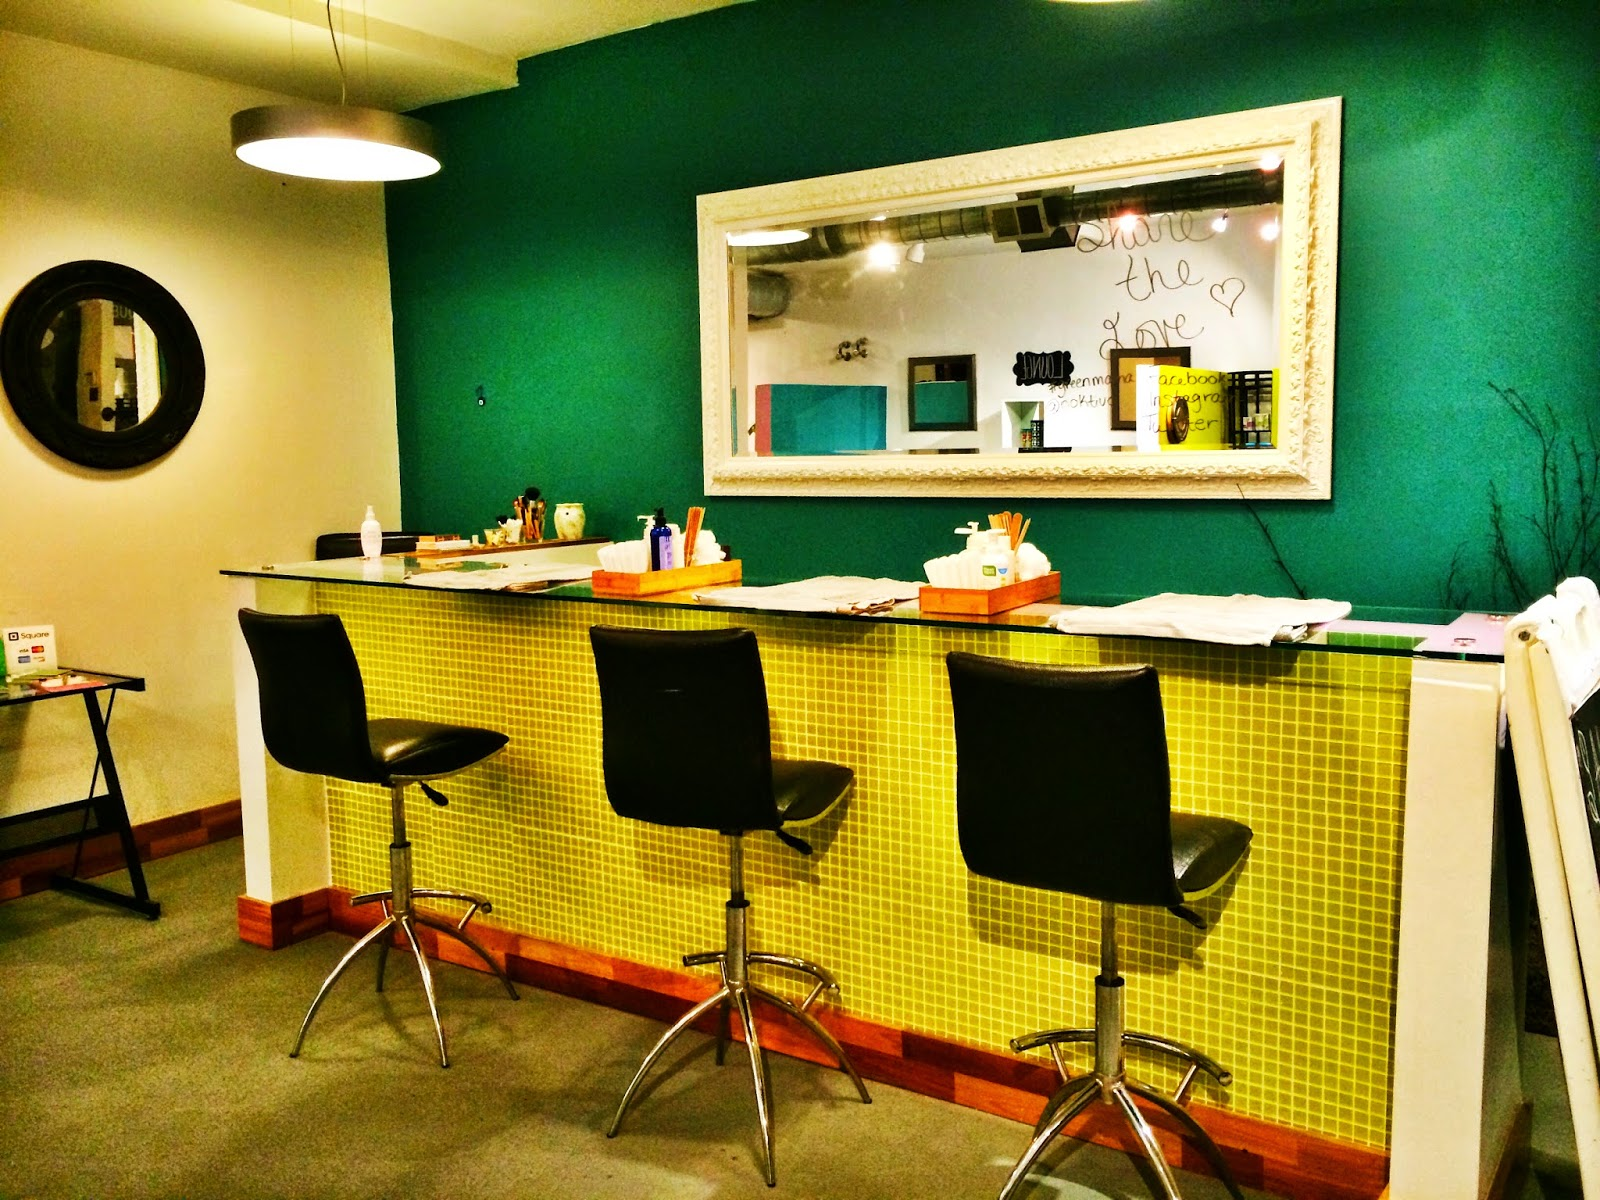 Noktivo Spa Manicure Station | all dressed up with nothing to drink...